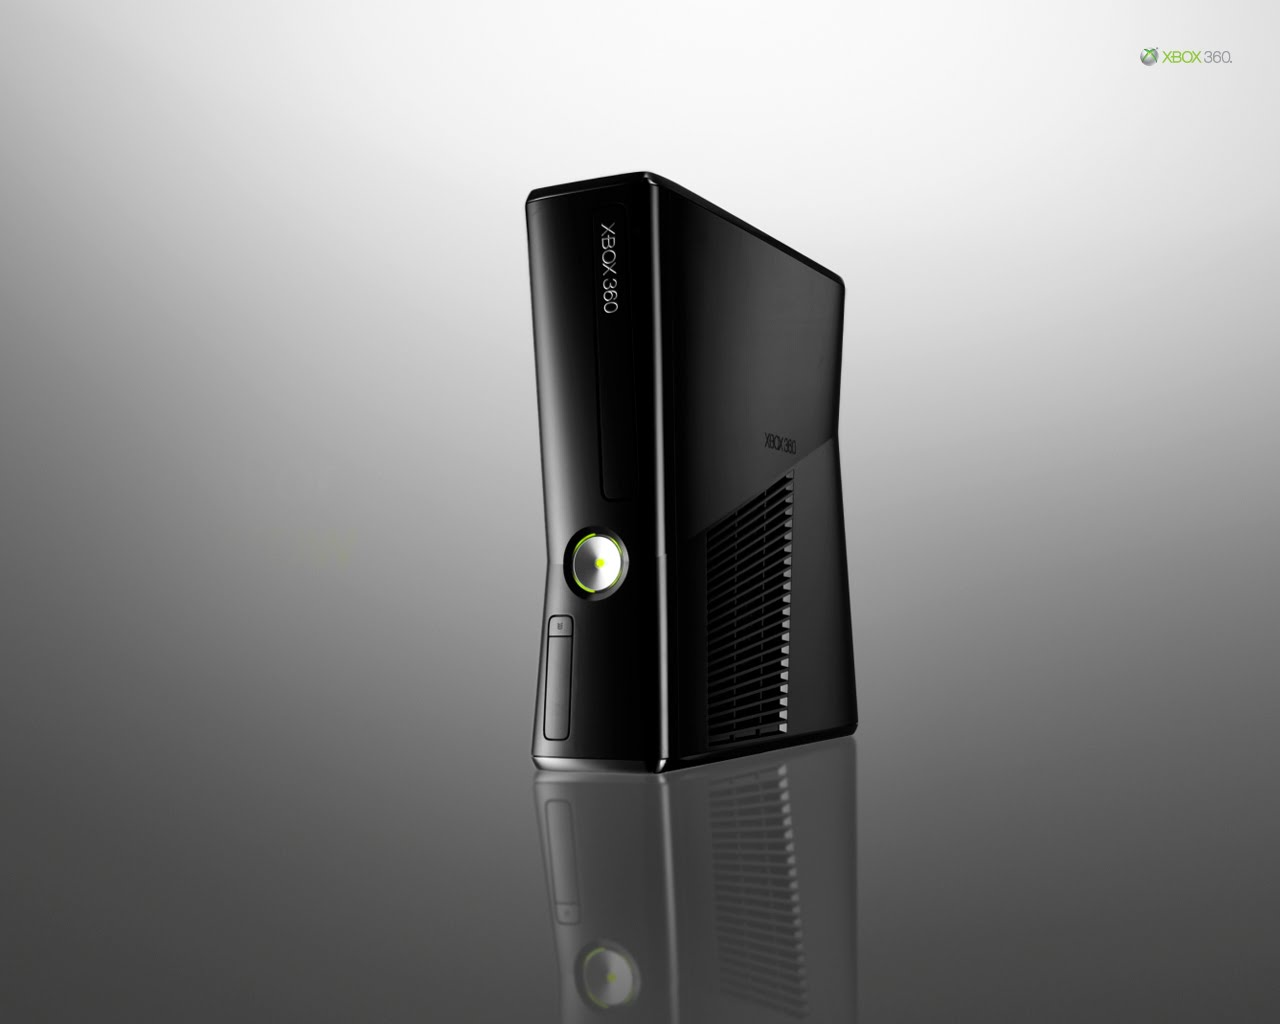 Planetlynx brand new xbox 360 console - The newest xbox 360 console ...